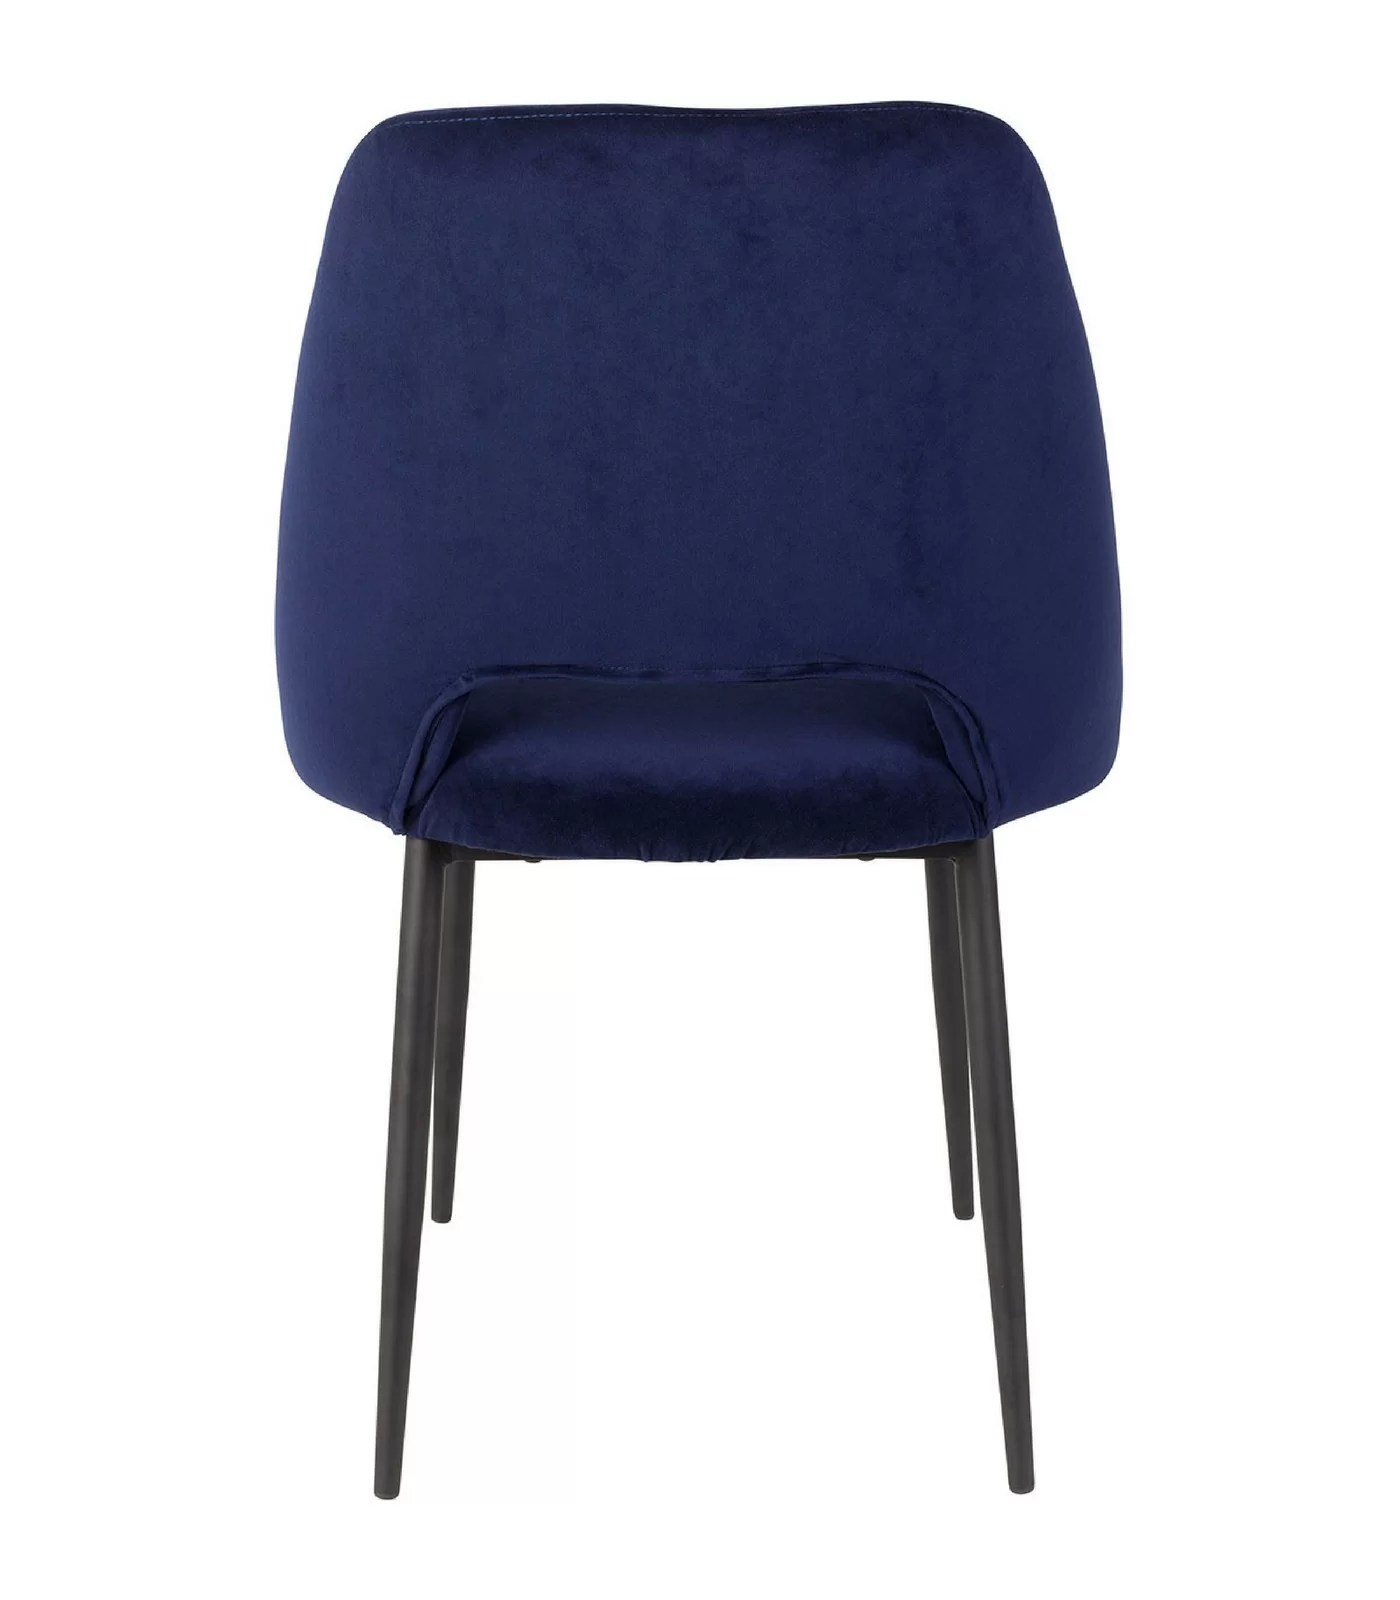 Chaise Navy Chaise Radisson Bleu Navy Pastel Living